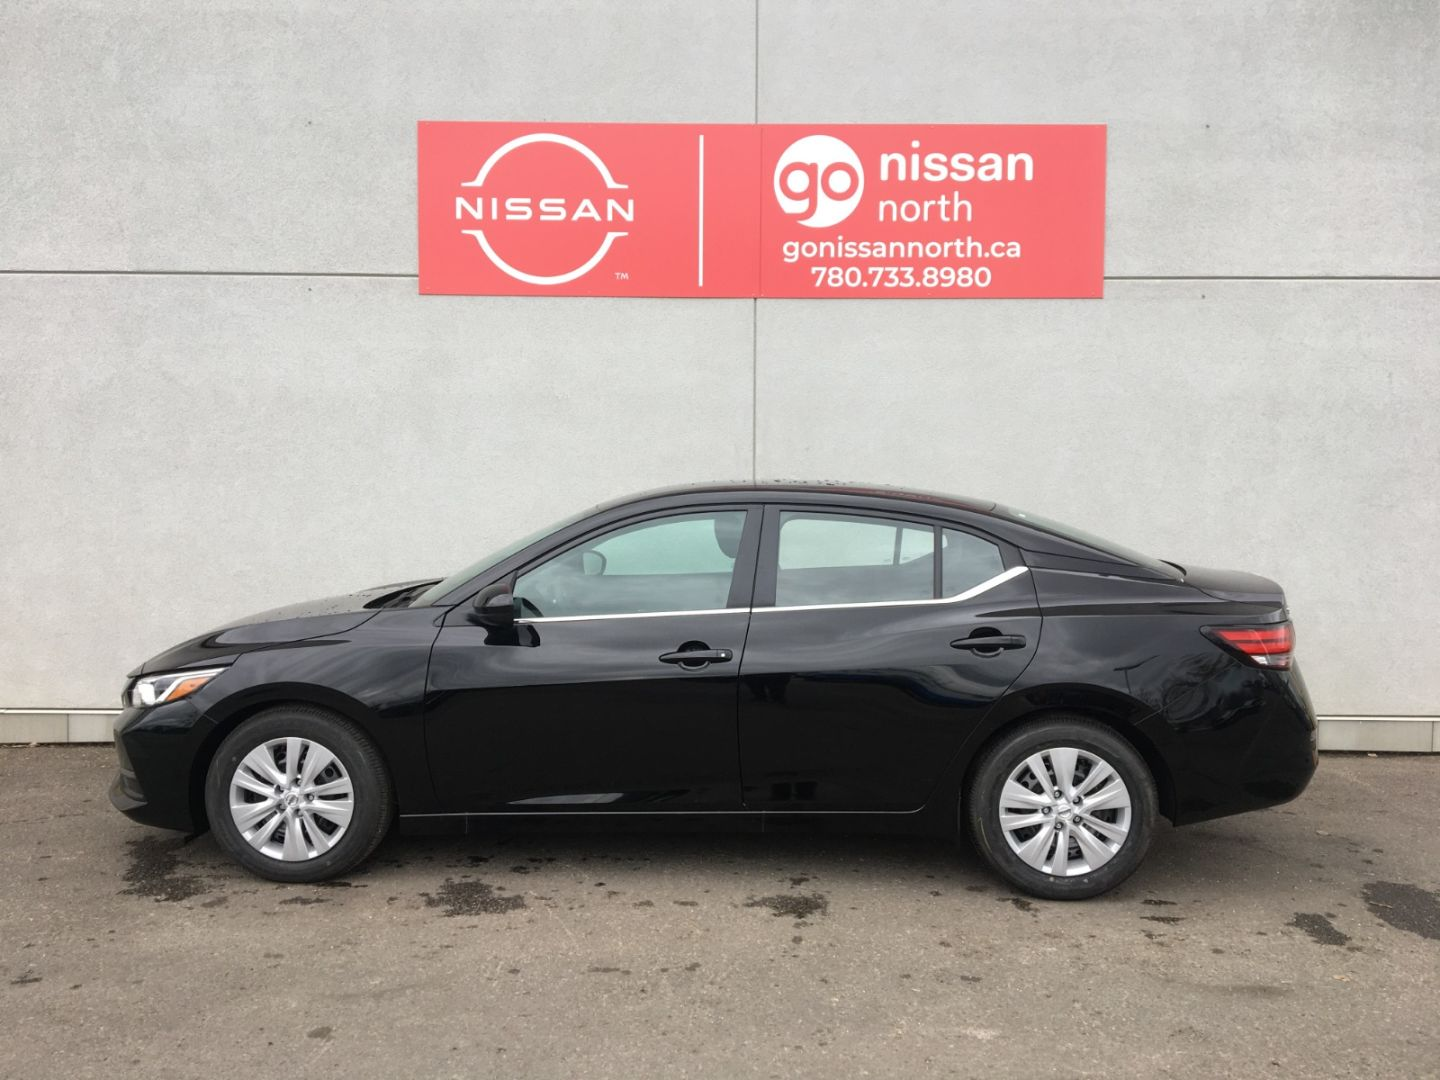 2020 Nissan Sentra S Plus for sale in Edmonton, Alberta